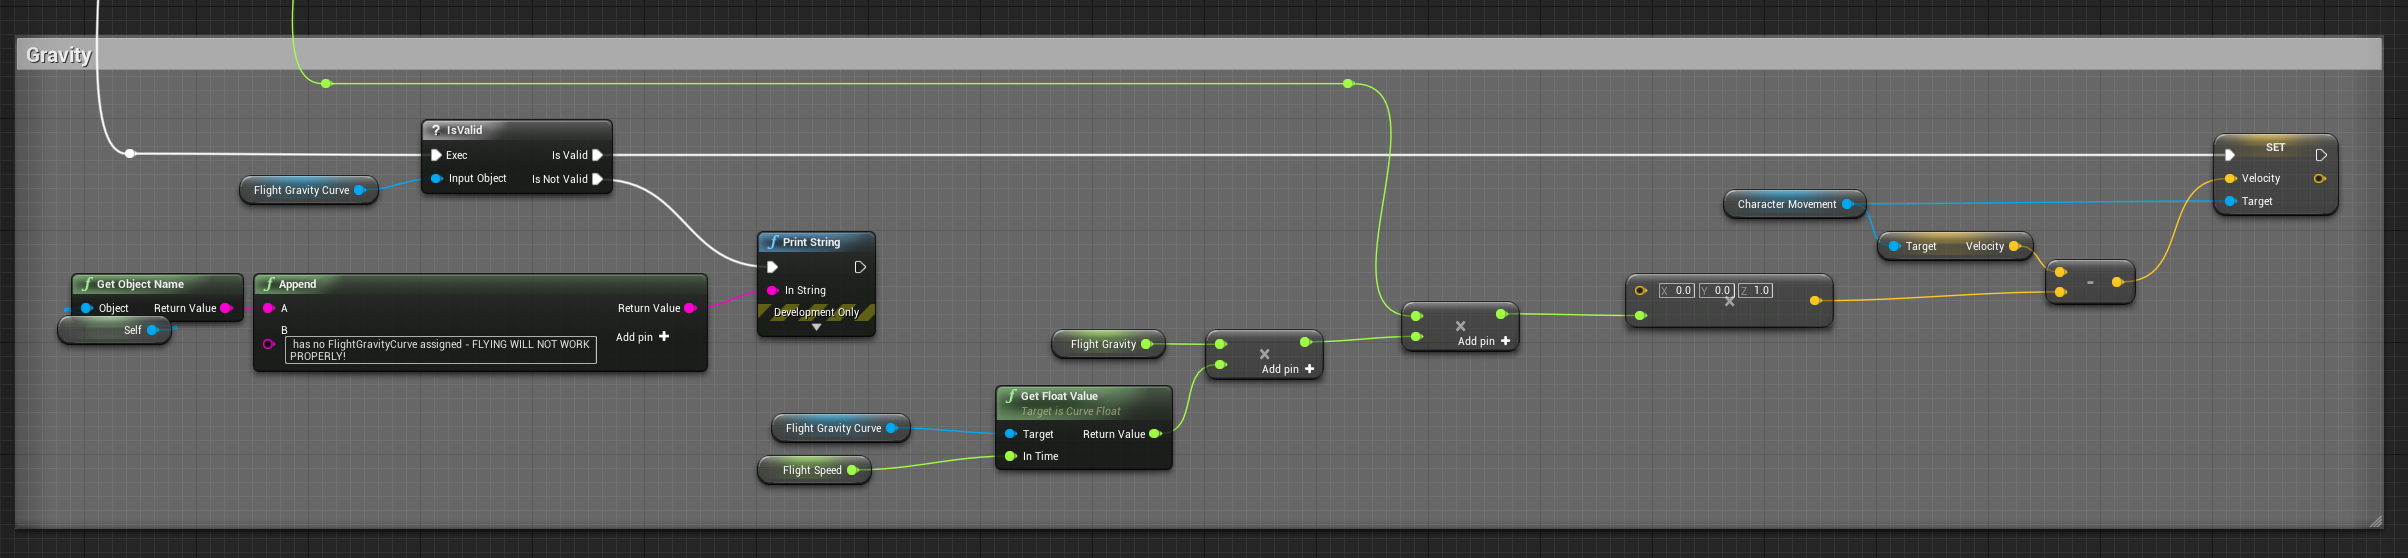 UE4Editor 2018-01-25 14-58-48.png